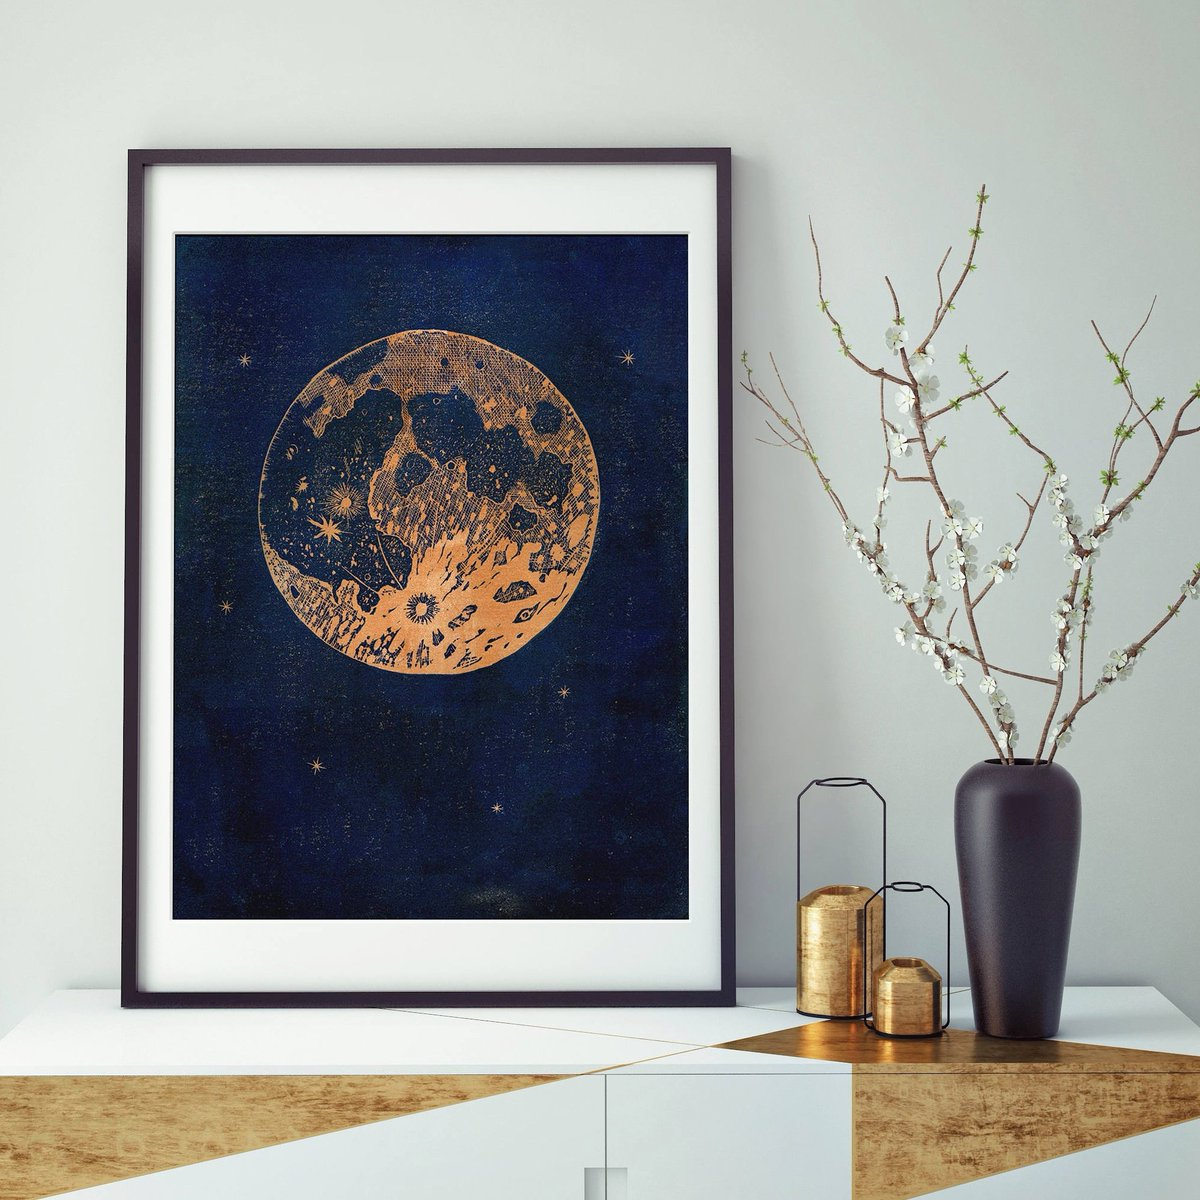 This copper moon linocut print has been so popular that I only have 2 left to go to new homes before Christmas! I&#39;ll be printing the rest of the edition soon, but the ink takes 3 months to dry! #handmadehour #crafthour #handmadechristmas <br>http://pic.twitter.com/Sev3kV8Ju3